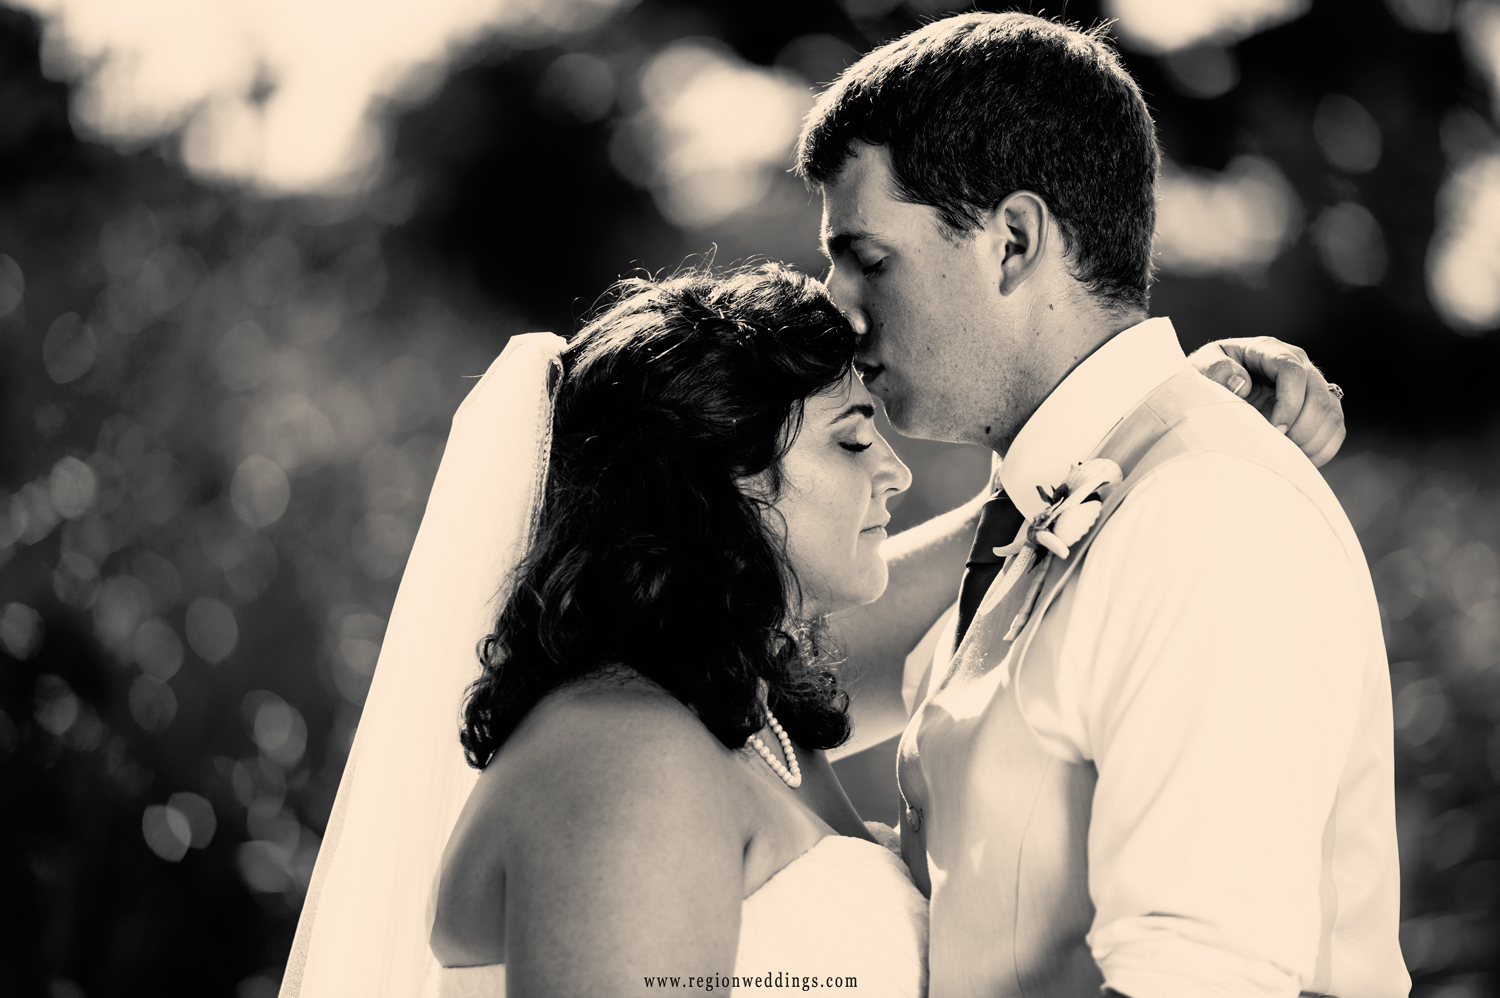 The bride and groom embrace on the beach after their summer wedding ceremony.